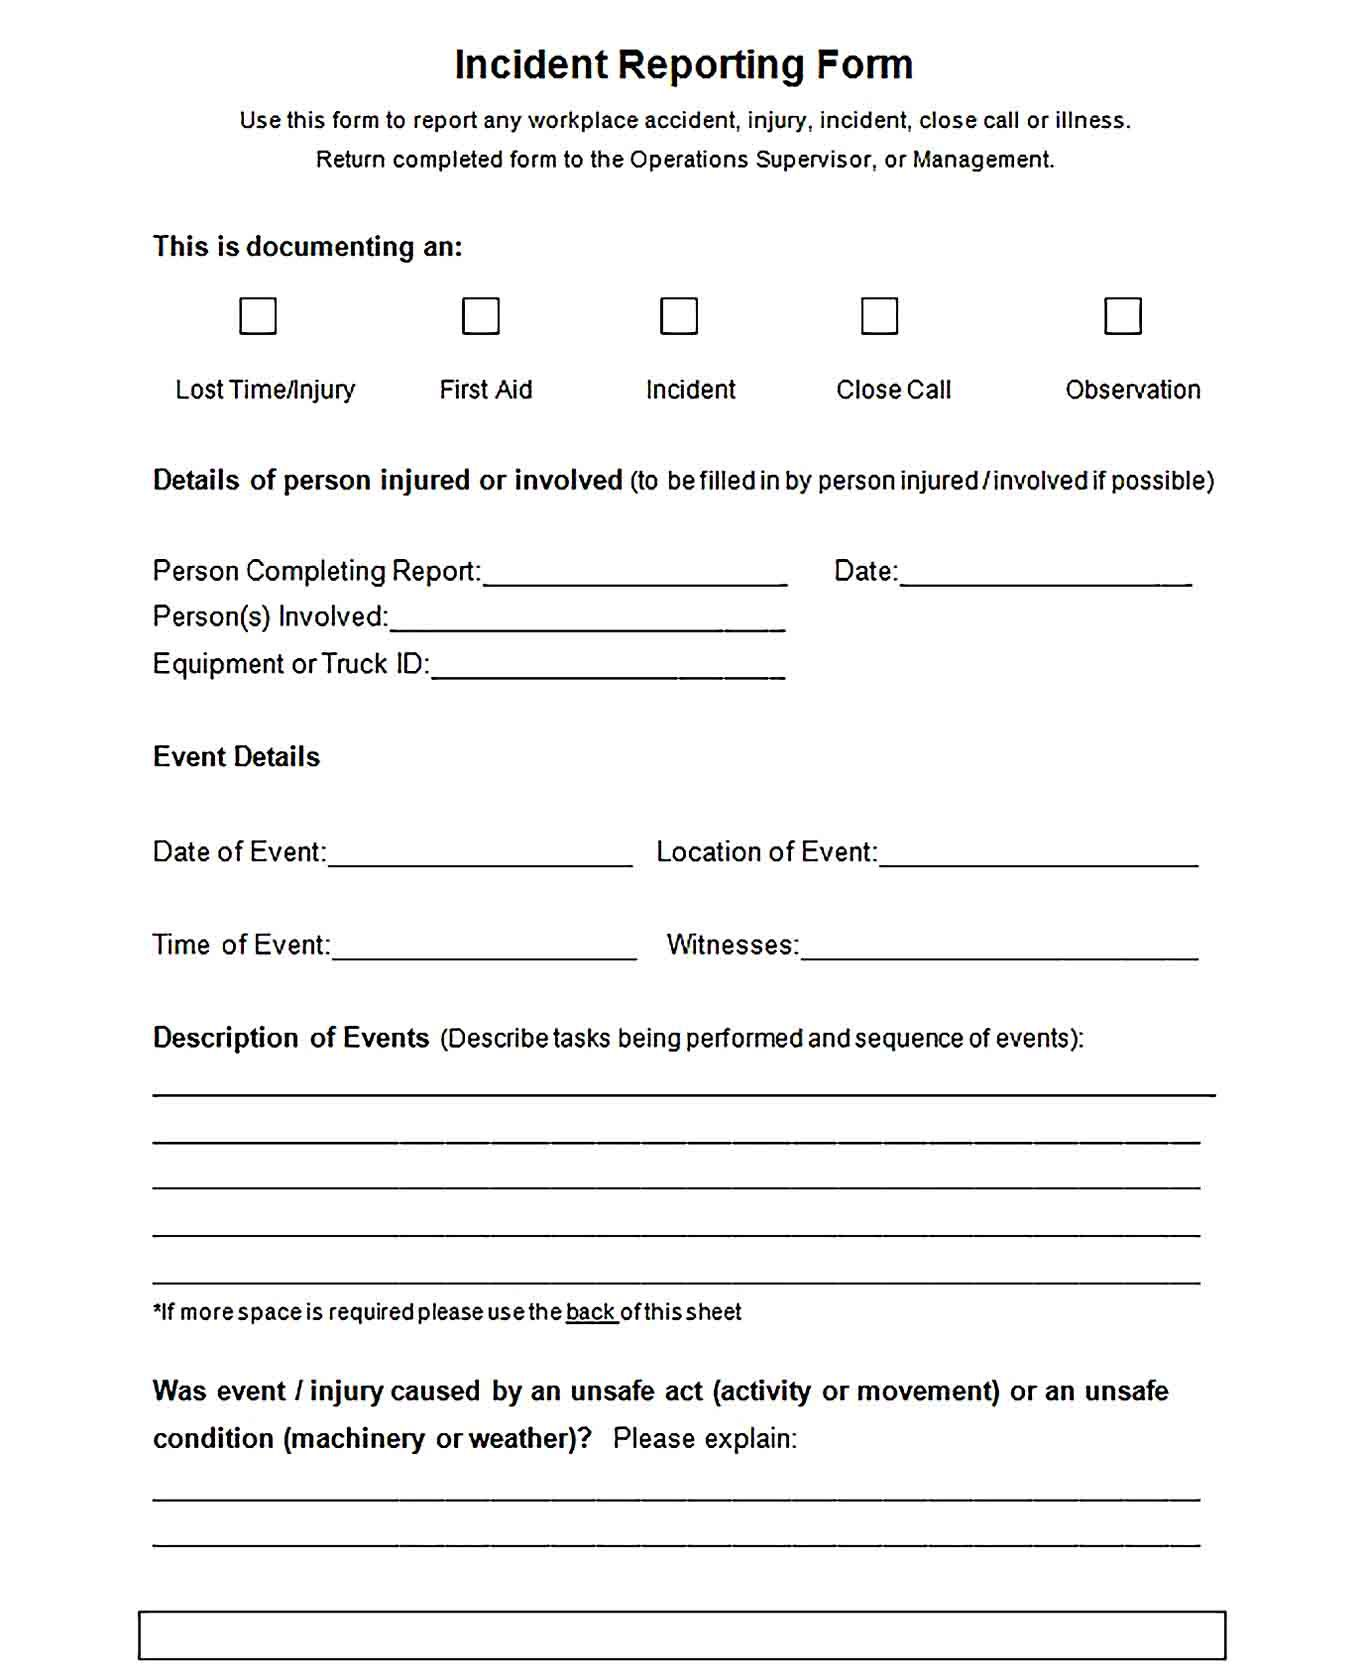 008 Rare Free Blank Expense Report Form Photo  Forms TemplateFull